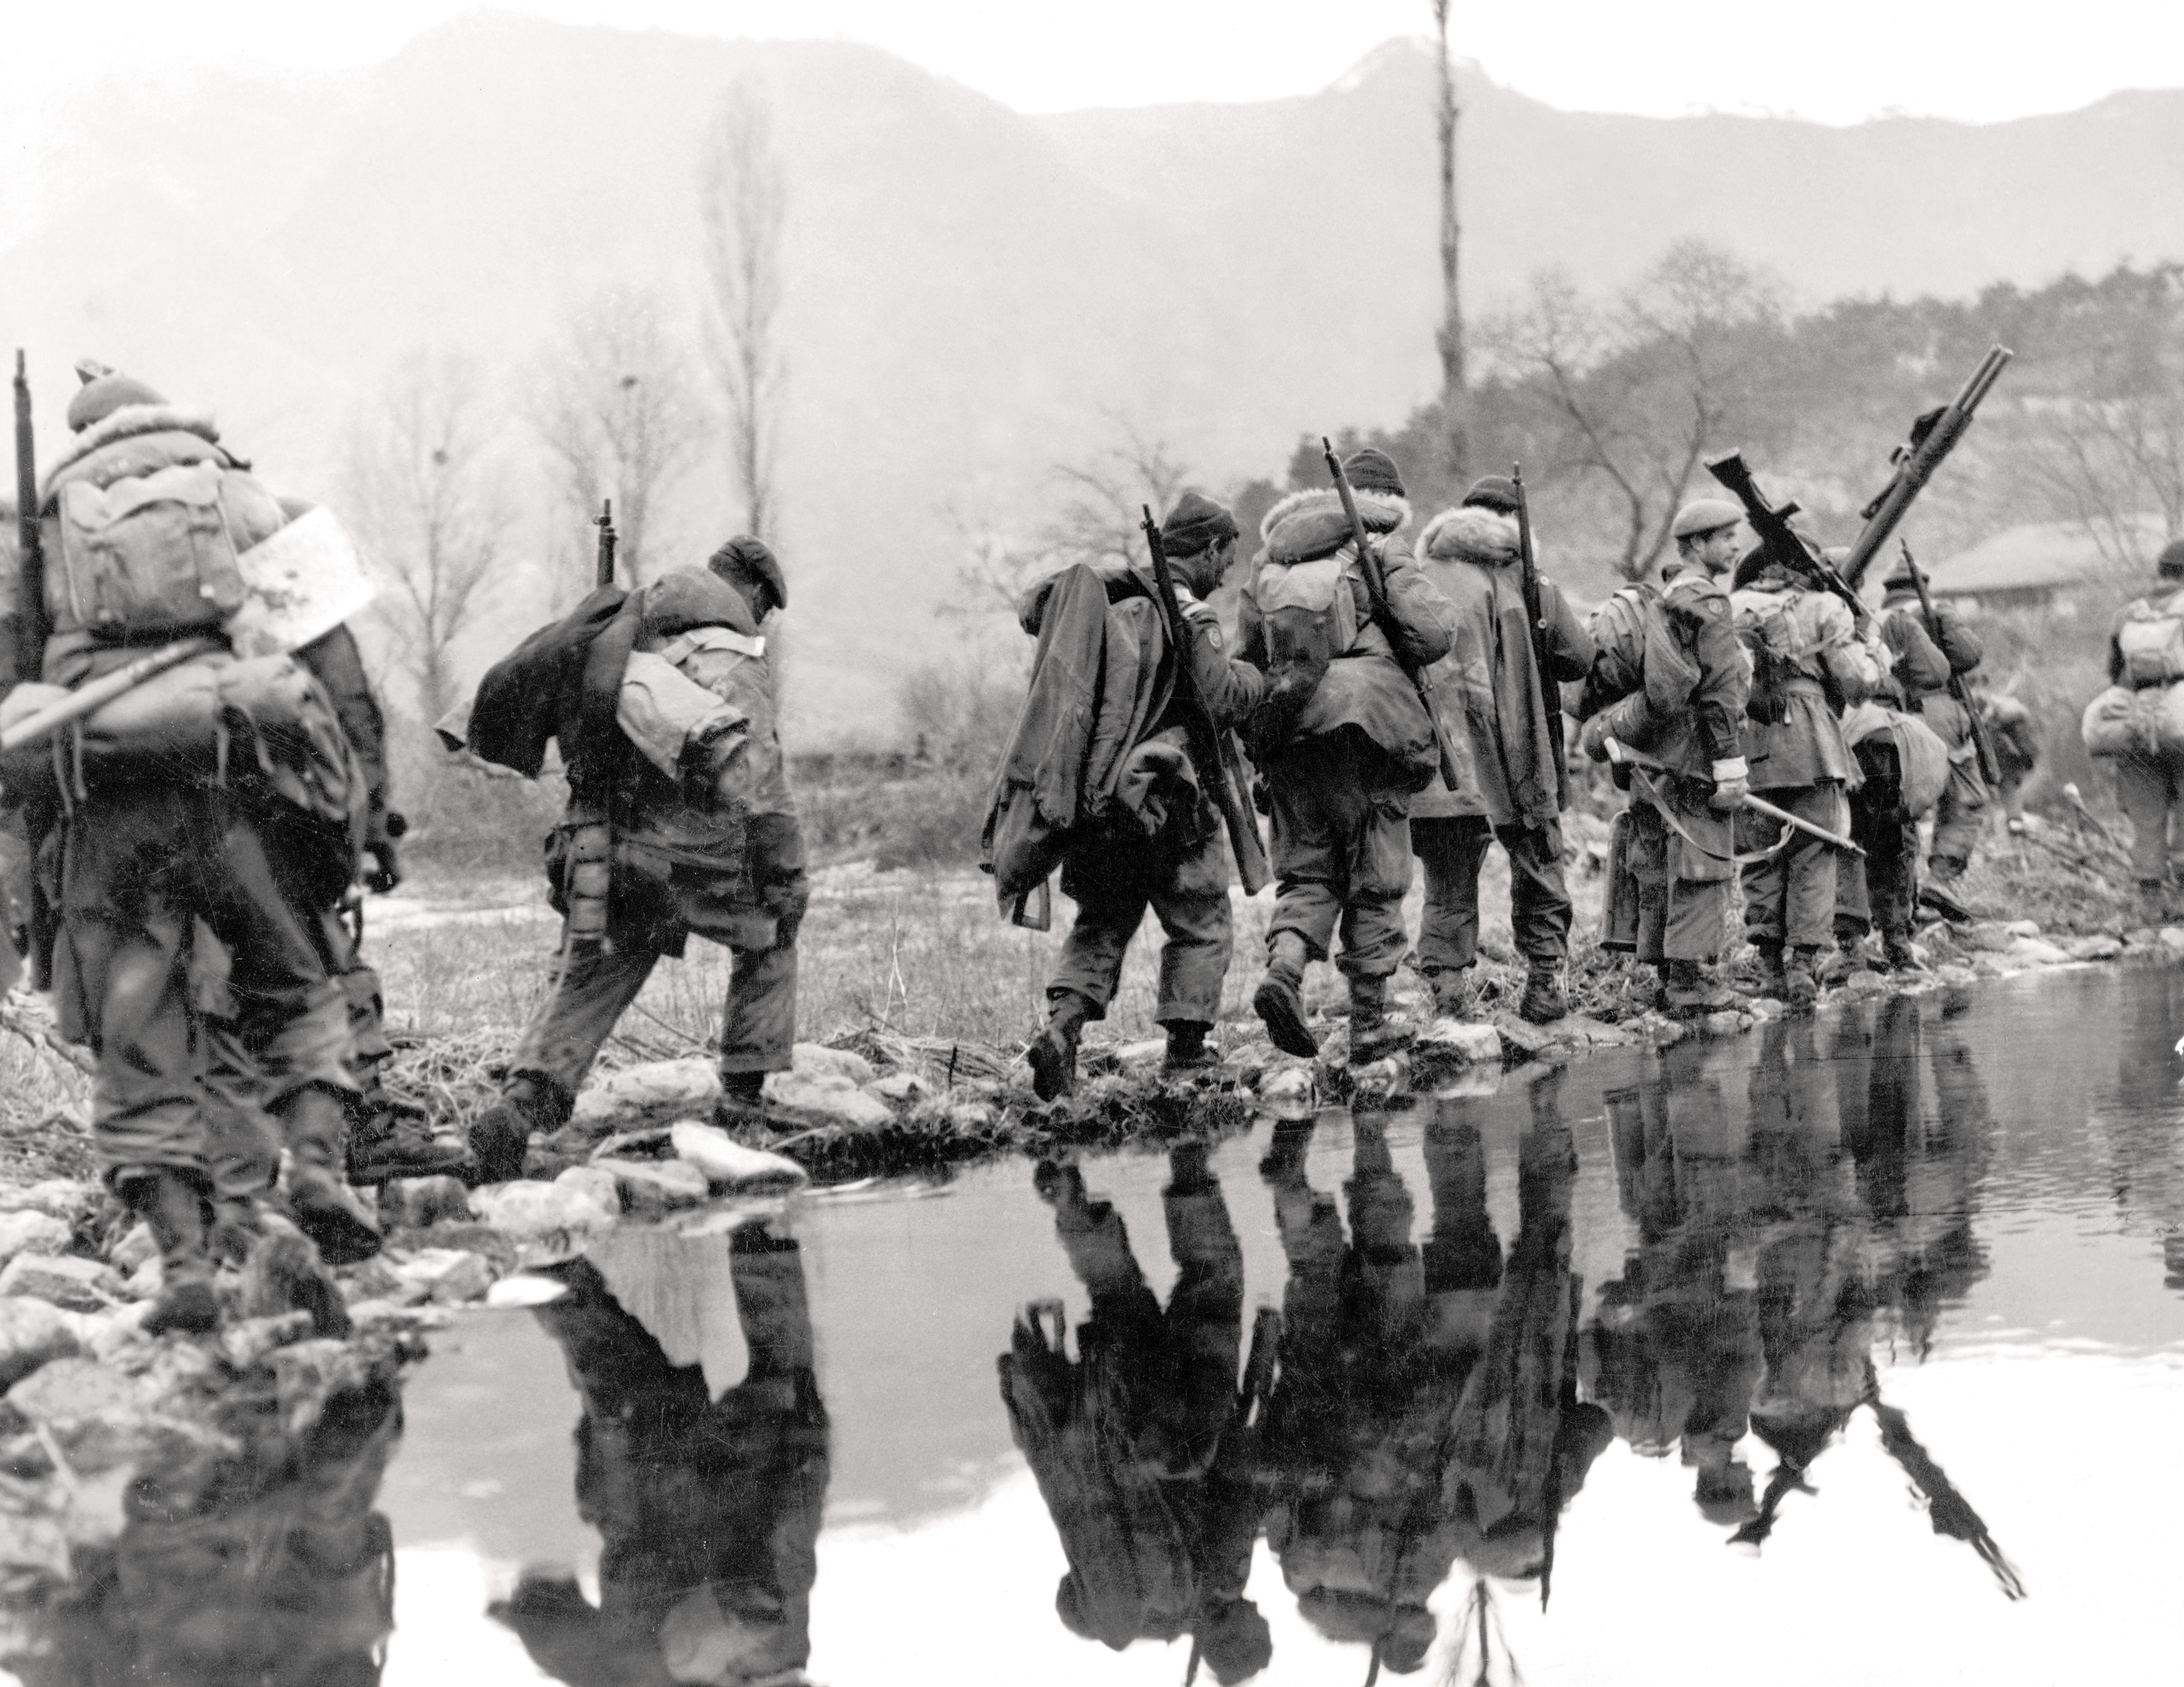 the korean war a battle for global The korean war was a war between the republic of korea and the democratic people's republic of korea (south and north korea respectively) it had active participation from the united states, china, and the soviet union.